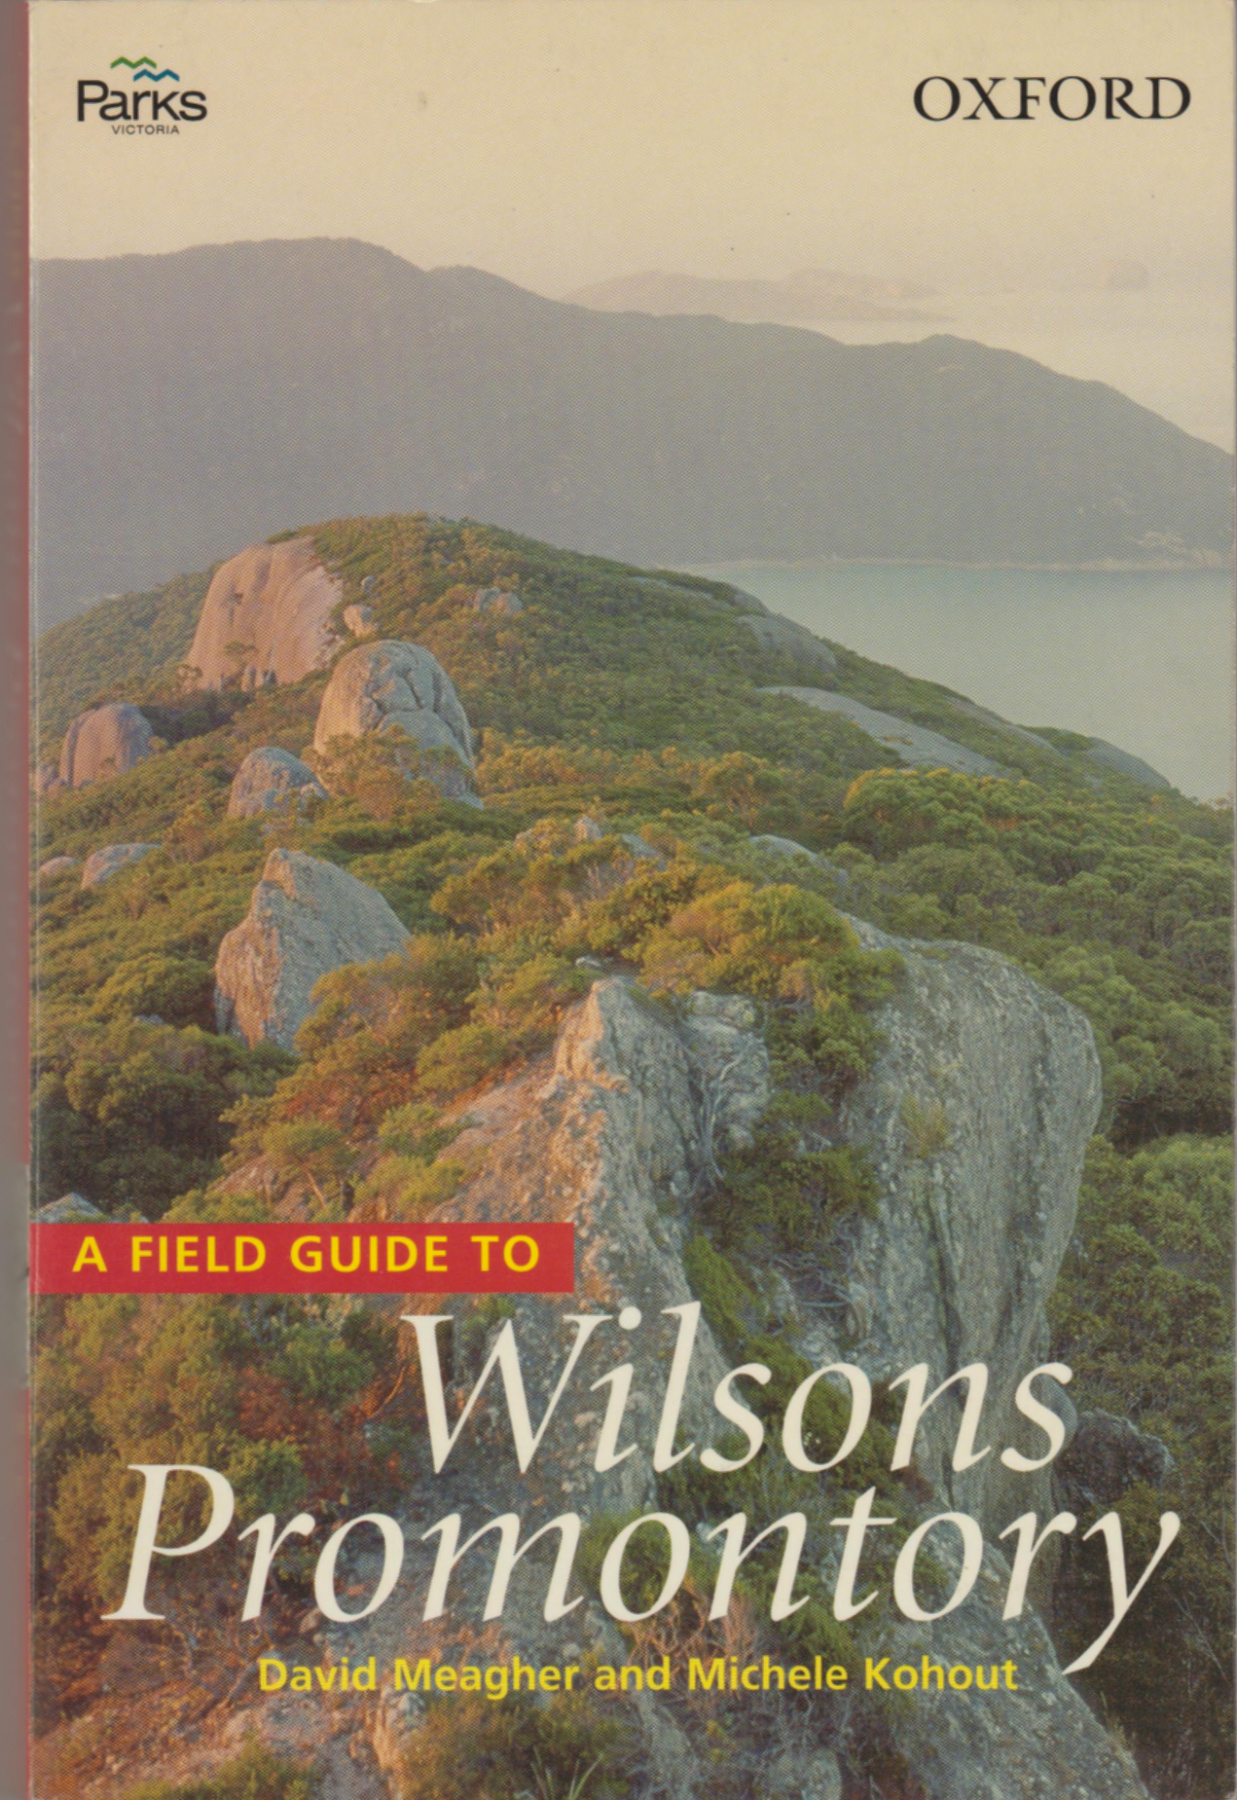 Image for A FIELD GUIDE TO WILSONS PROMONTORY